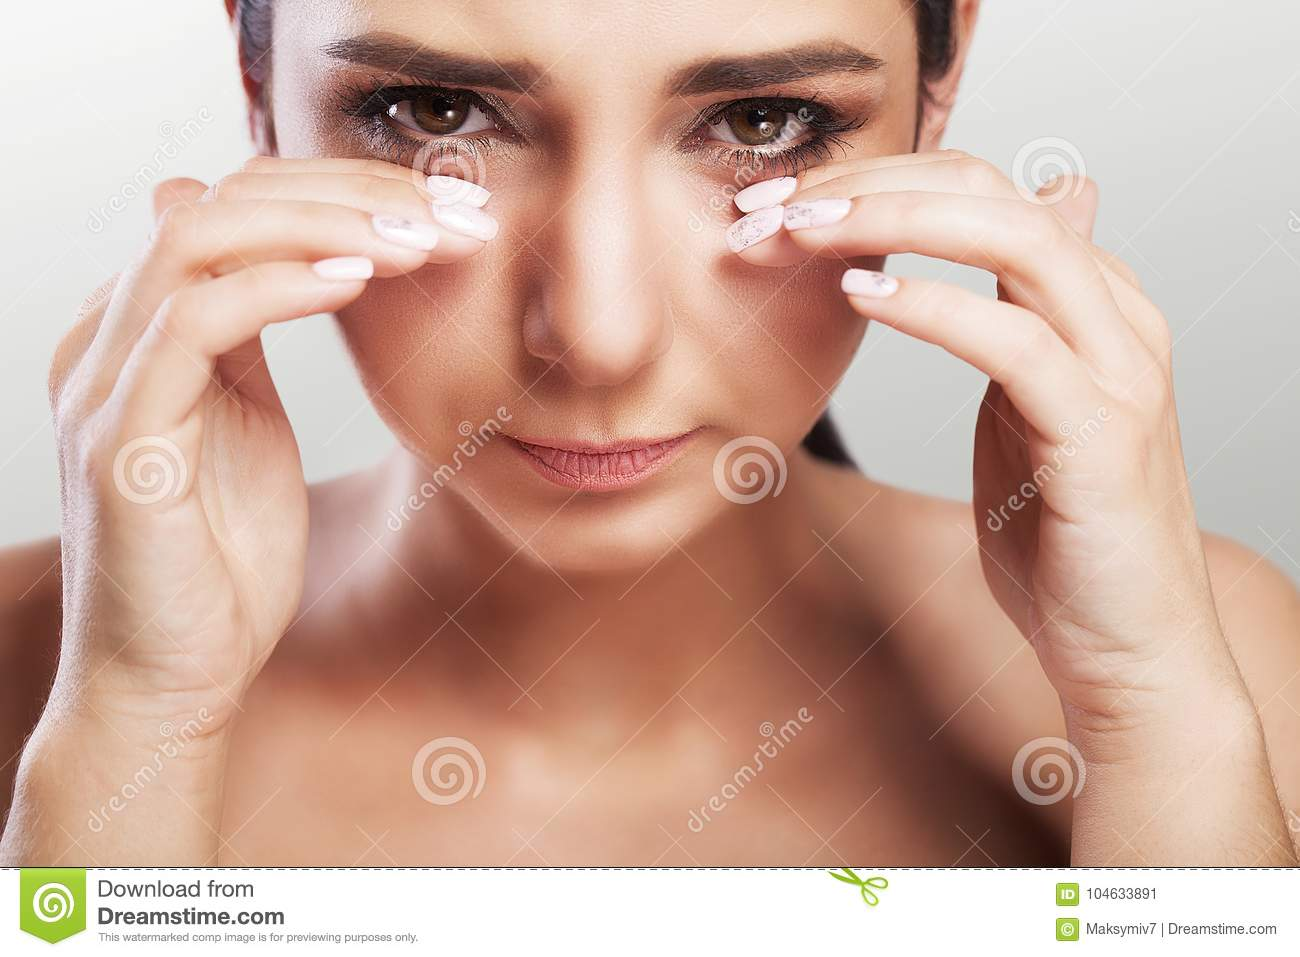 Pain in the eye area. A beautiful unhappy woman who suffers from severe pain in the eye area. Portrait of a sad woman`s feeling o